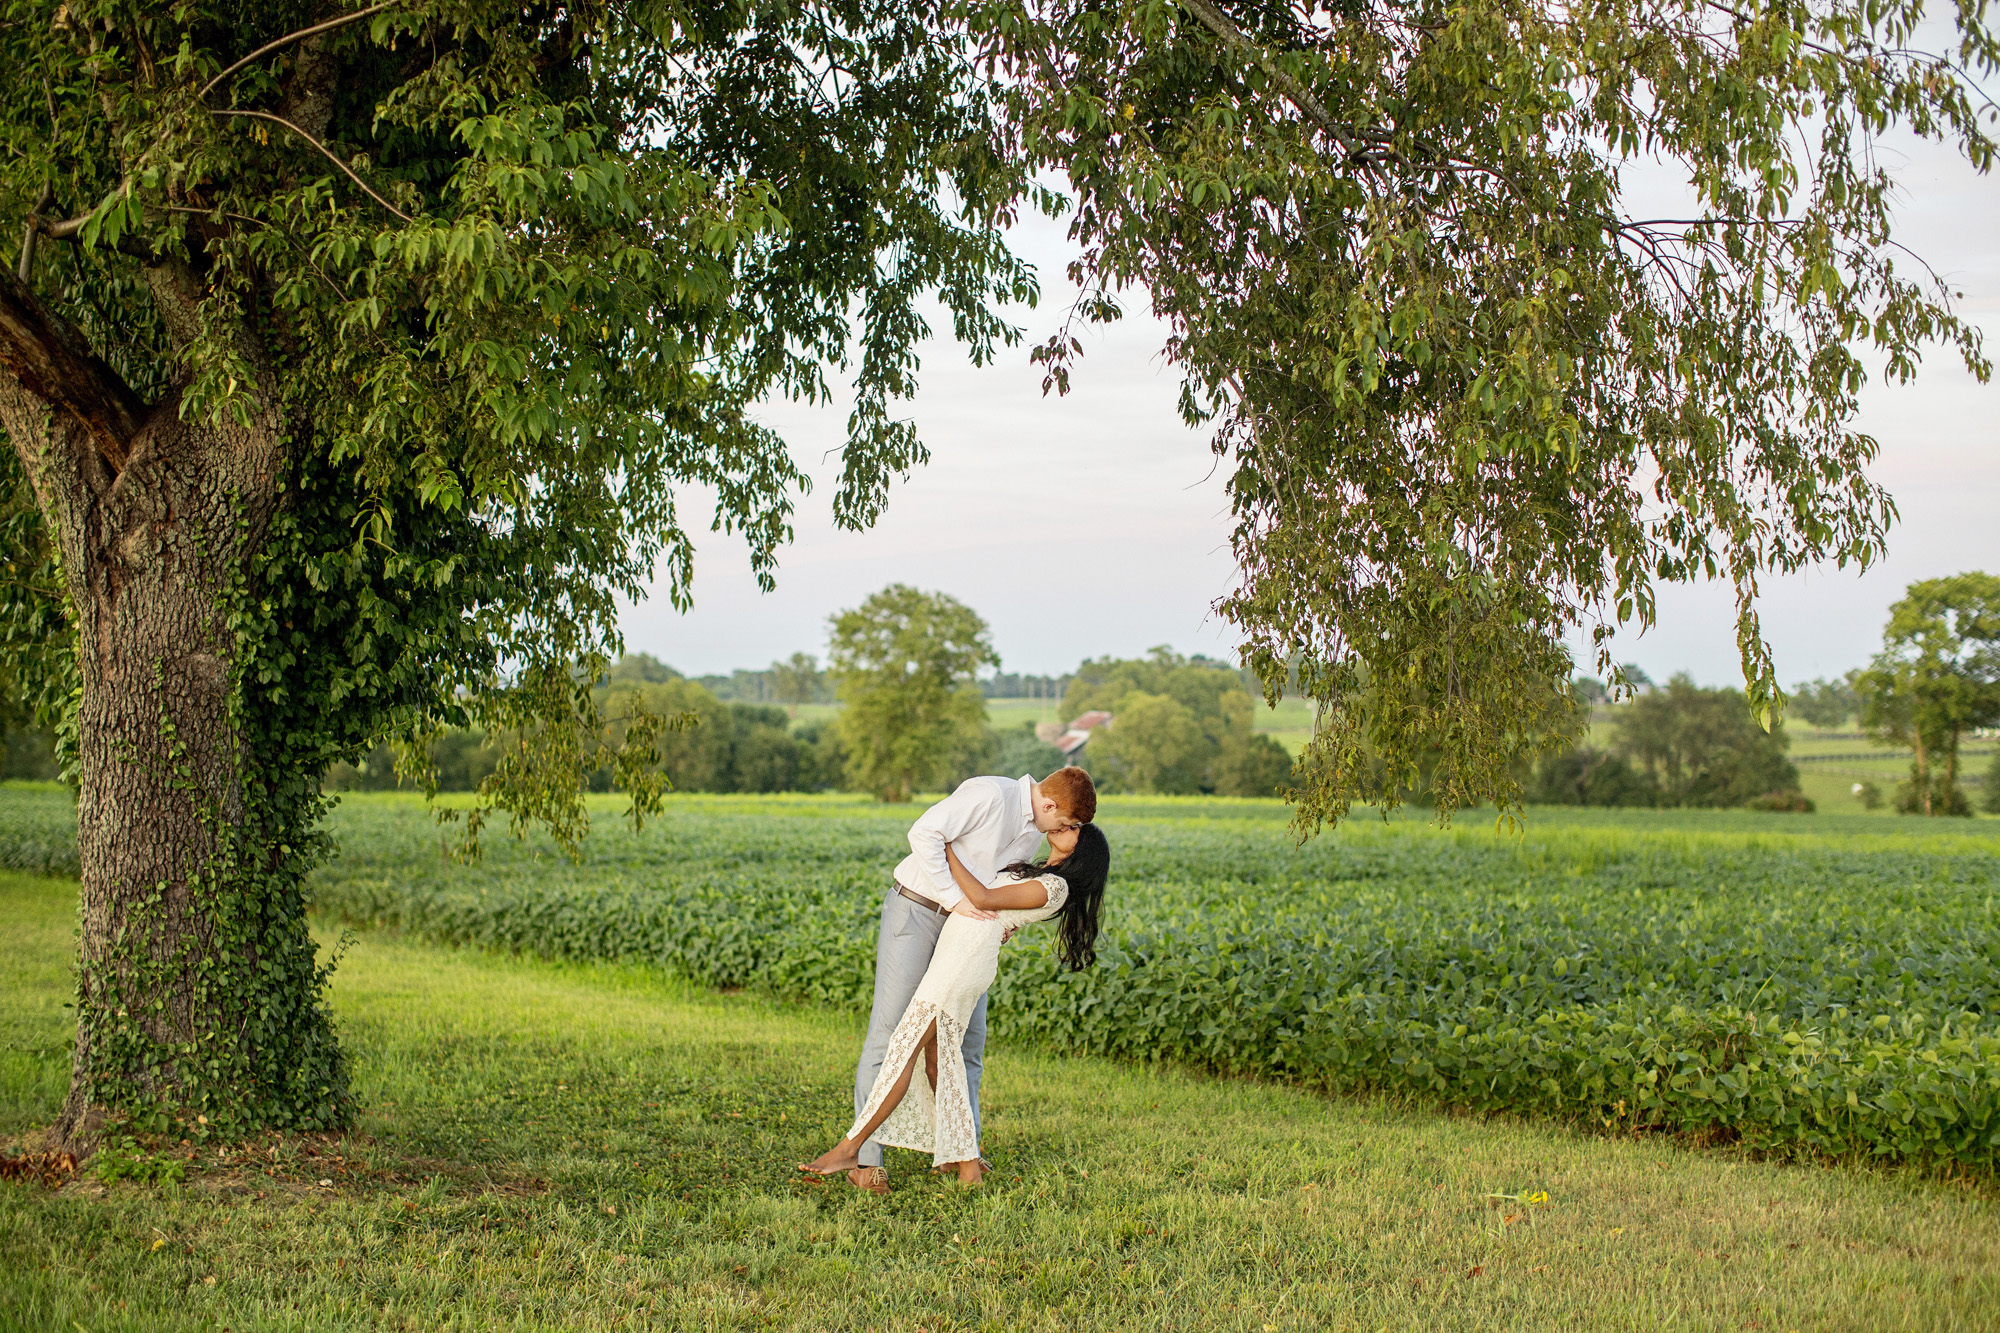 Seriously_Sabrina_Photography_Lexington_Midway_Kentucky_Engagement_Merefield_Sunflowers_Naz_and_Drew30.jpg